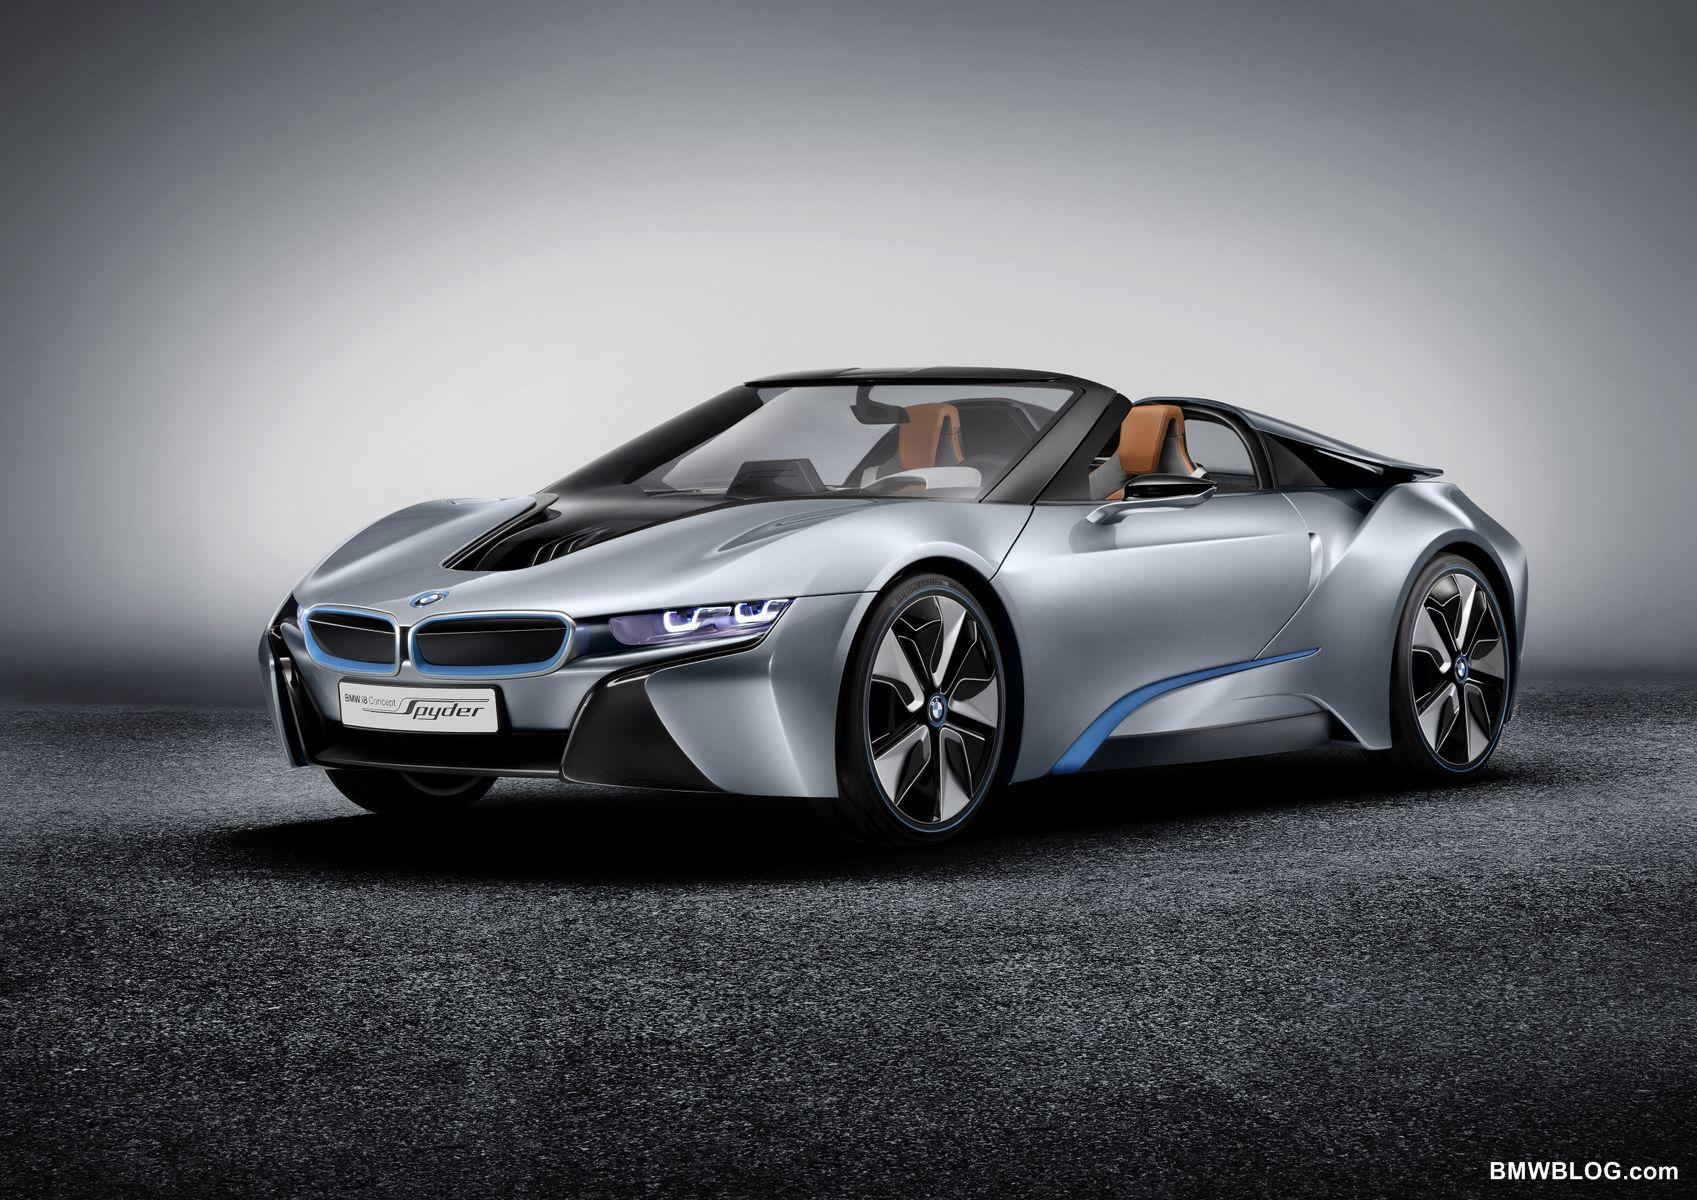 SPIED: BMW i8 Spyder caught testing with roof on